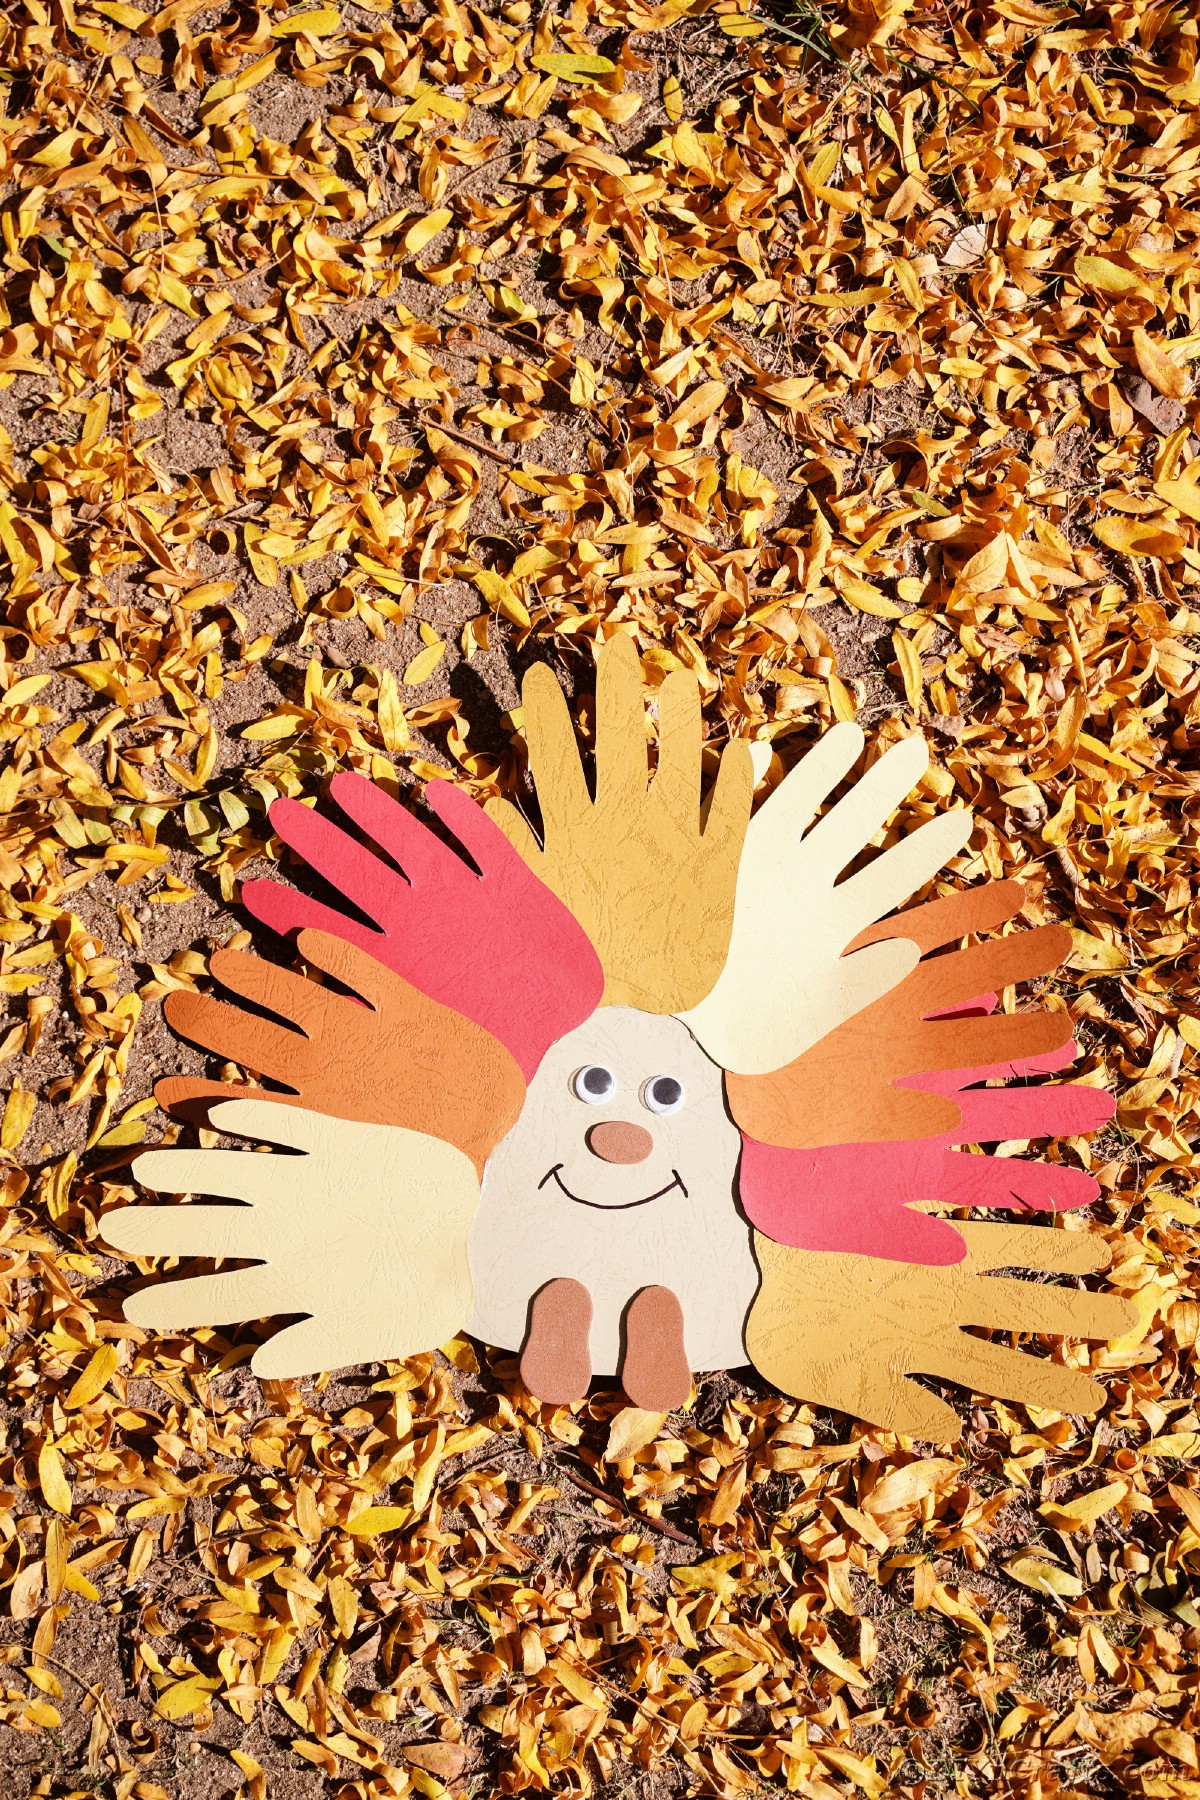 Fallen yellow leaves on ground topped with handprint paper hedgehog